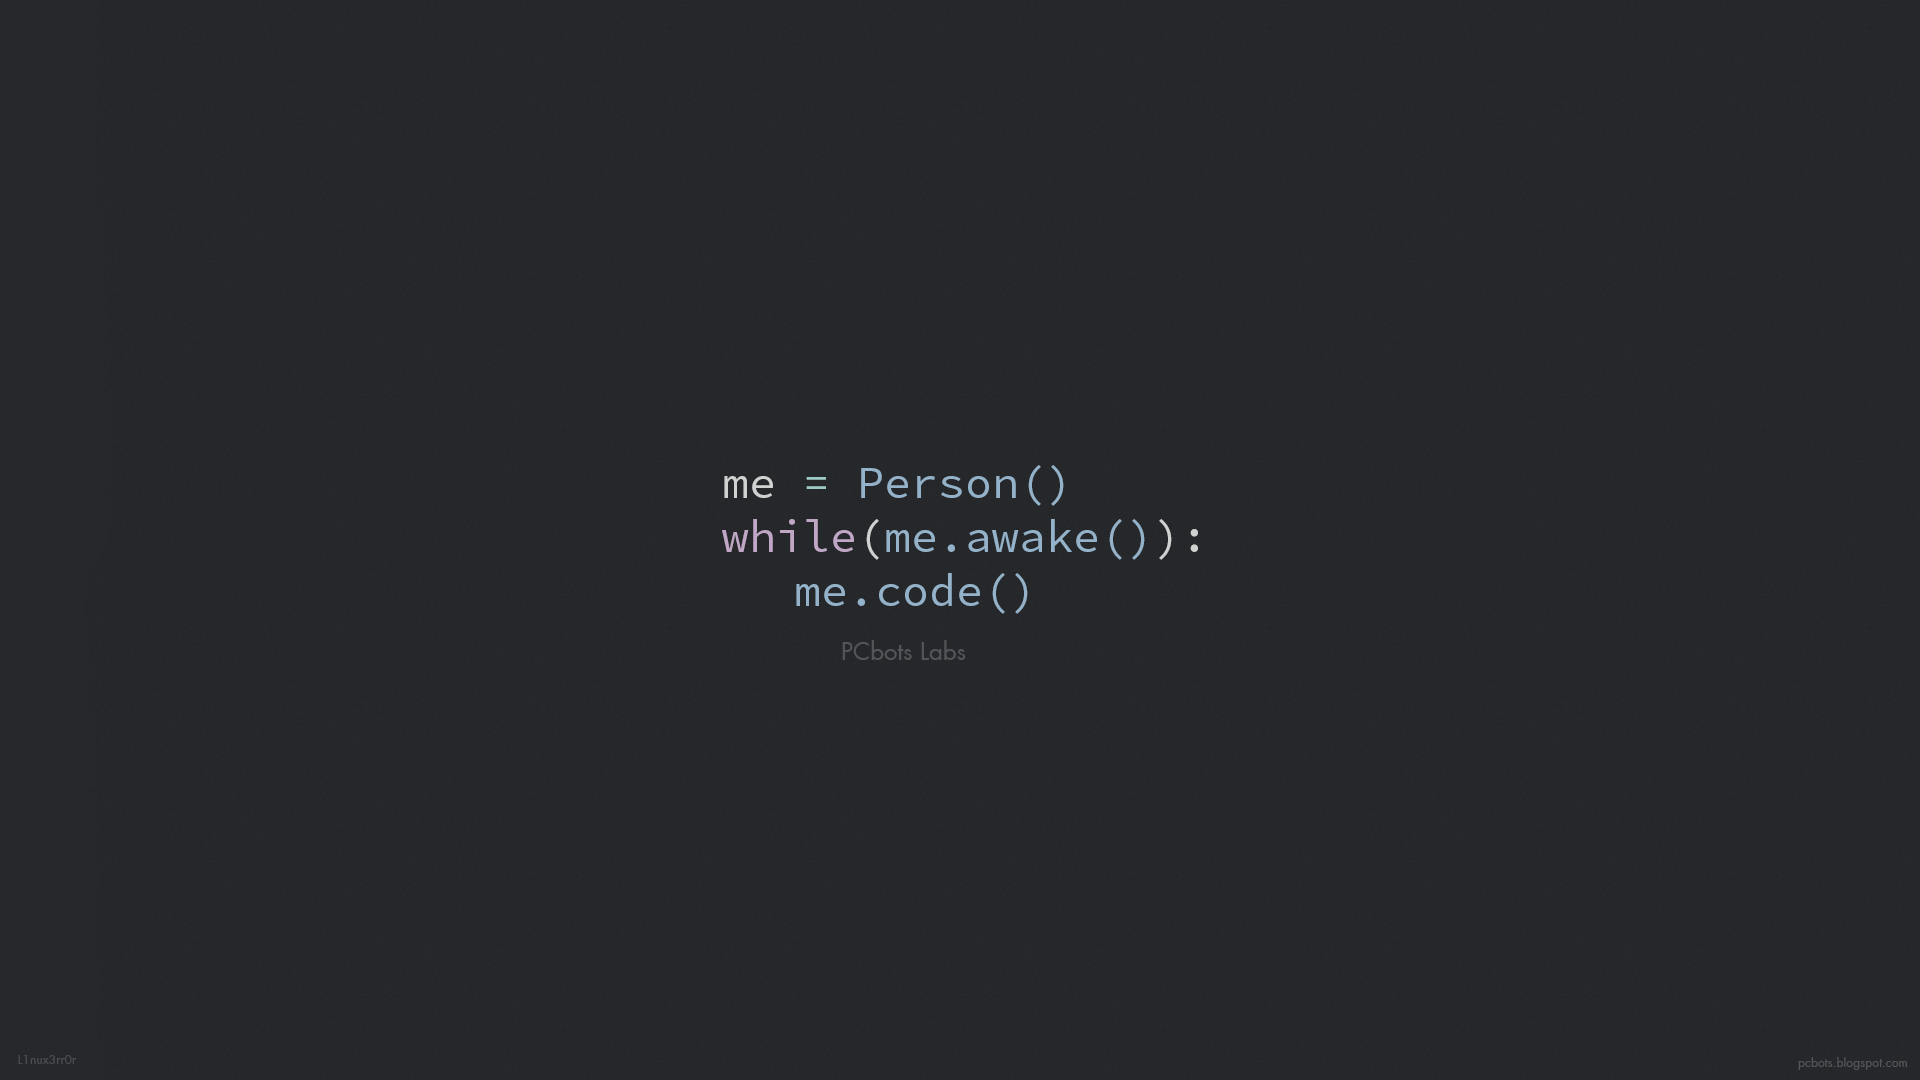 1000 Images About Programming Quotes On Pinterest: ID:665093 - Wallpaper Abyss